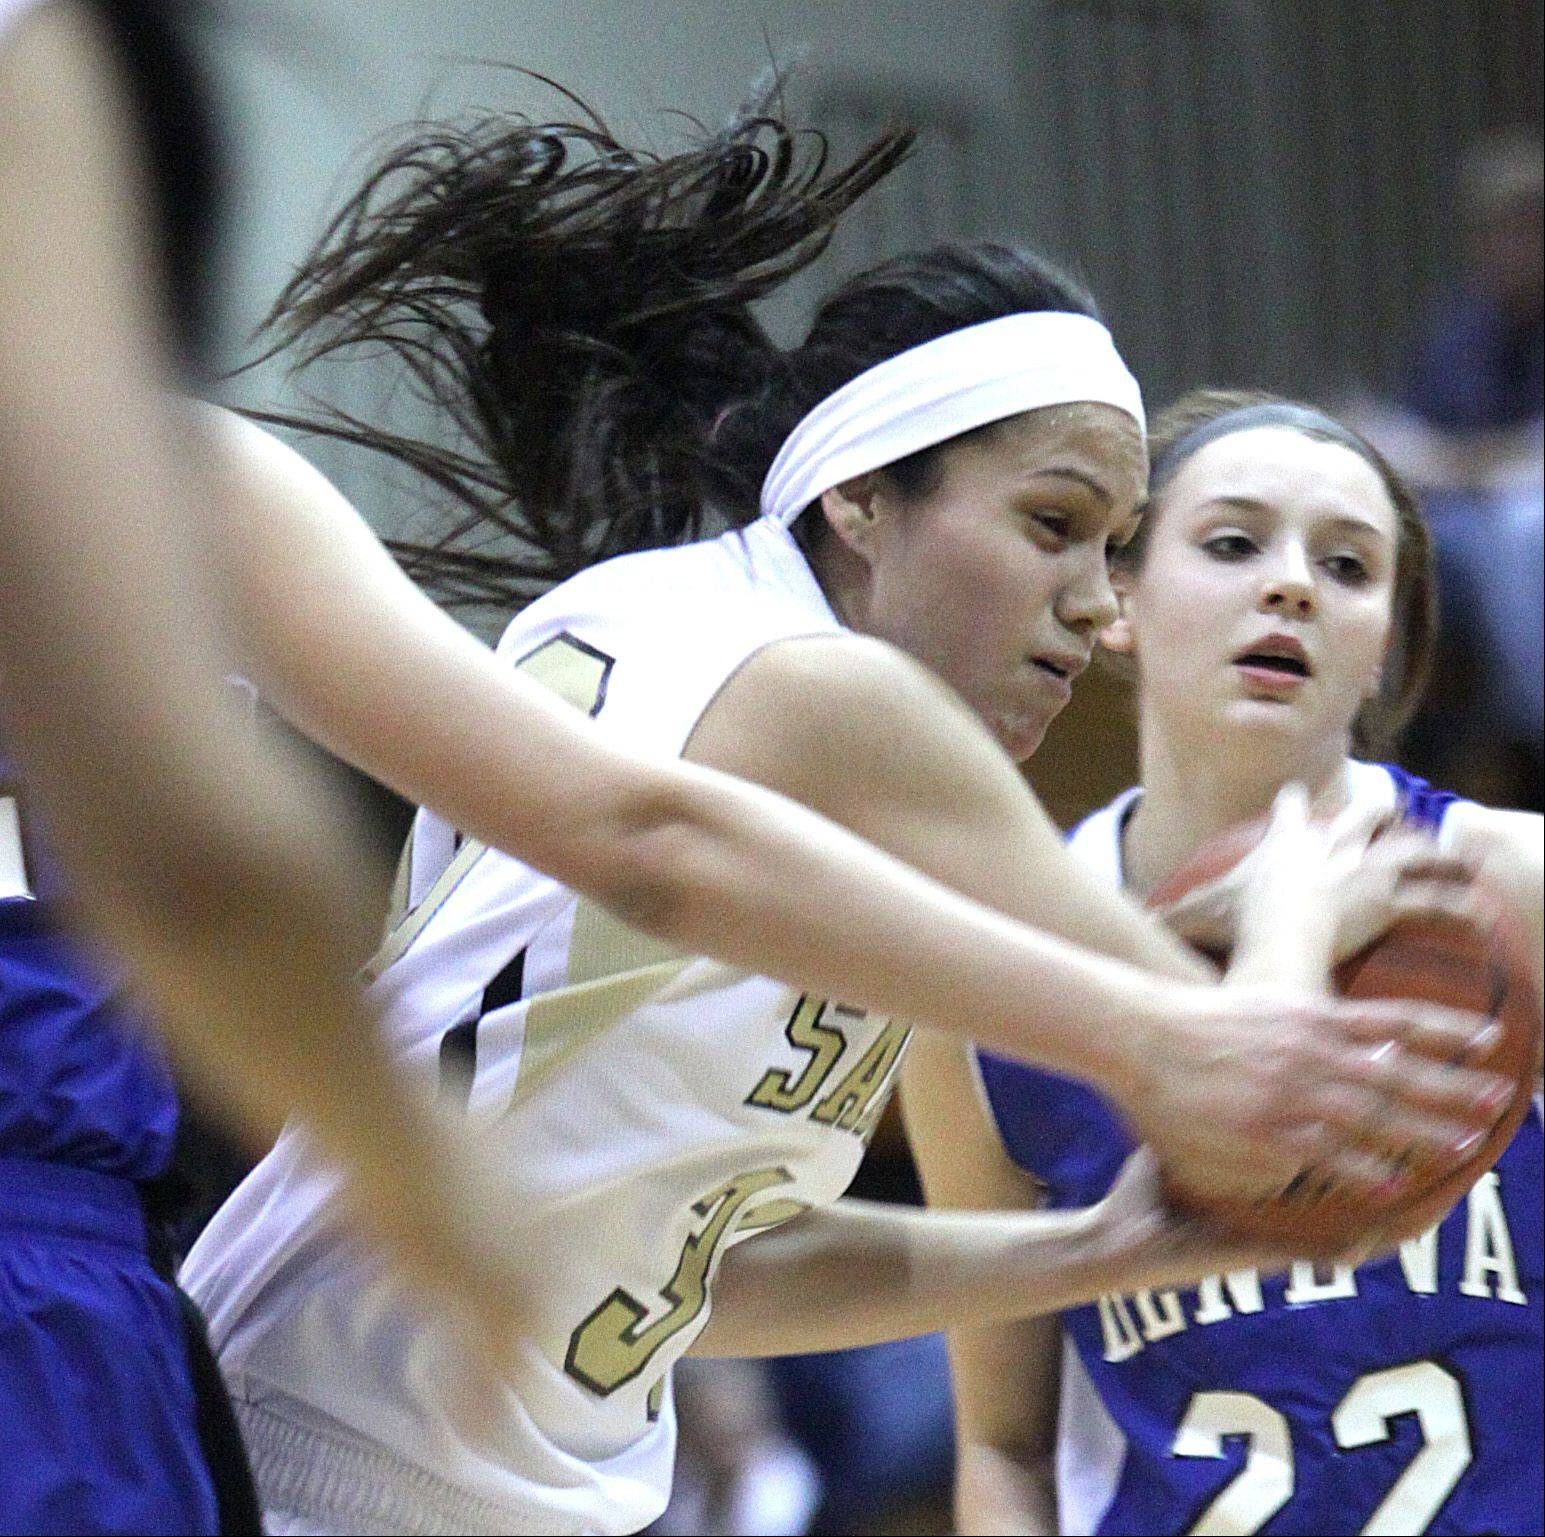 Streamwood's Jessica Cerda moves the ball against Geneva during a varsity basketball game at Streamwood on Friday night. Geneva won the game 54-43.